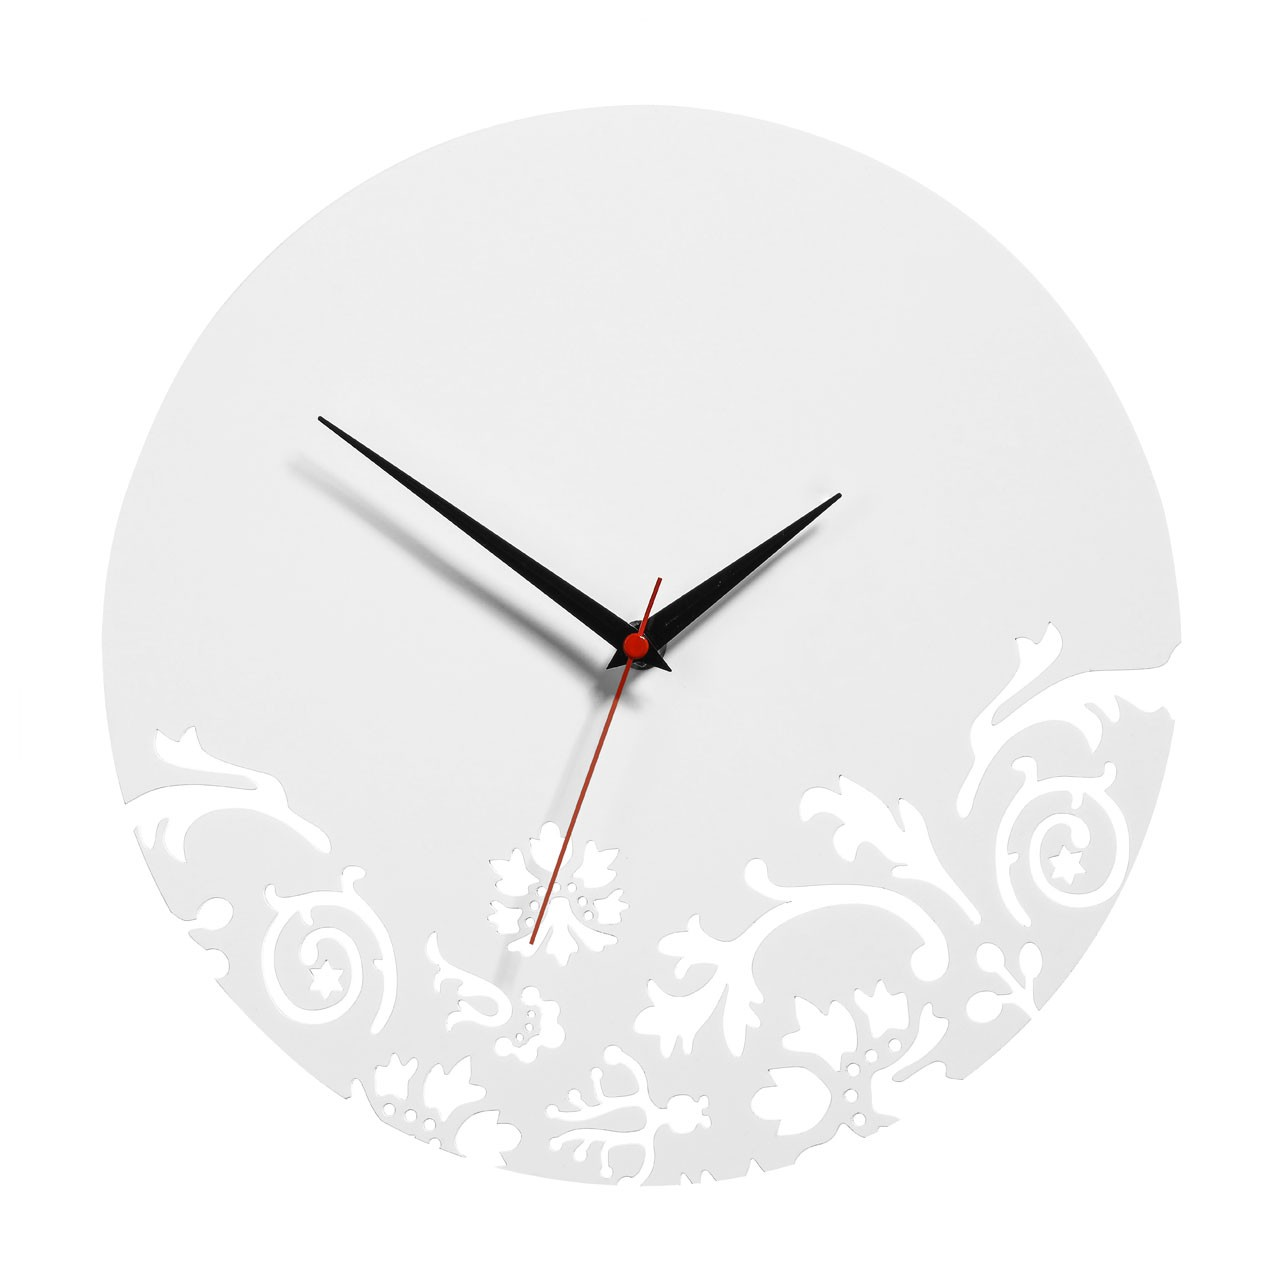 Prime Furnishing Floral Swirl Wall Clock - White